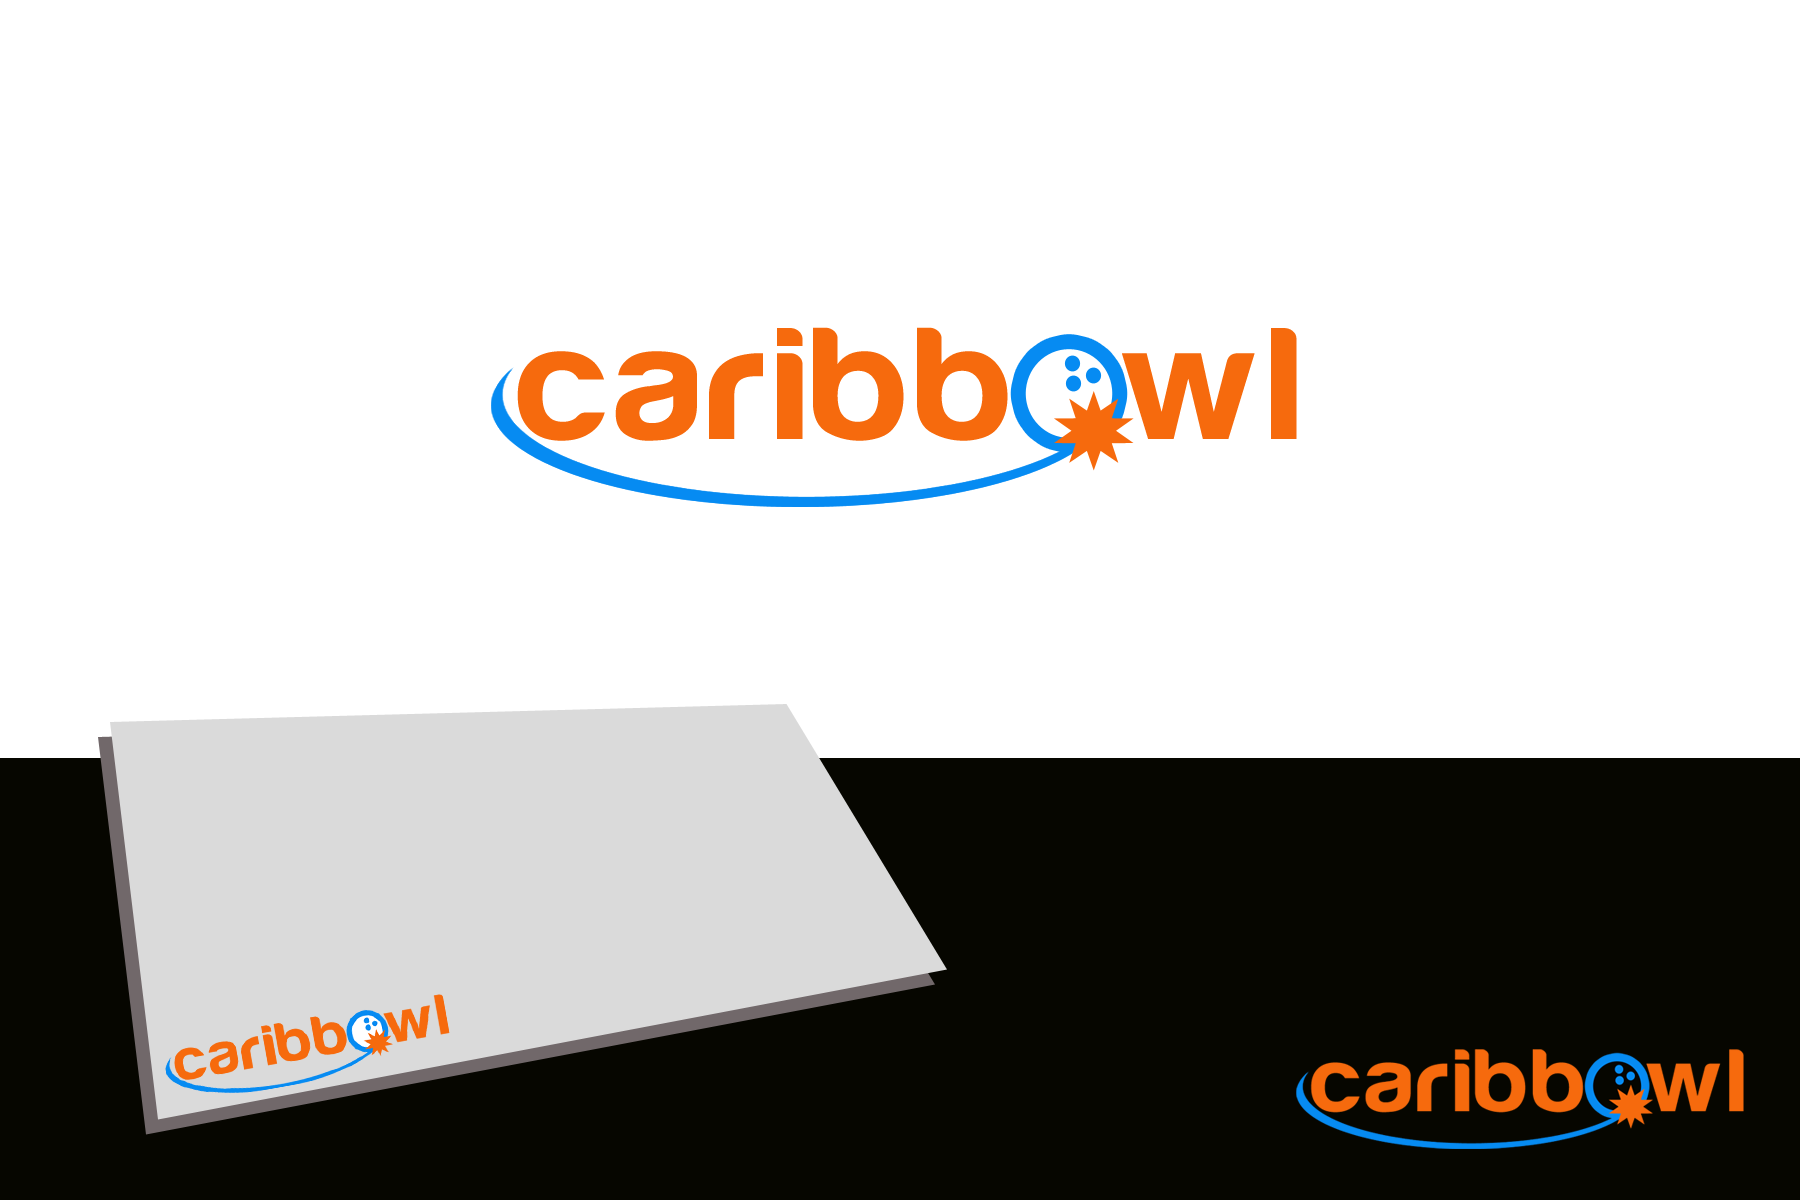 Logo Design by golden-hand - Entry No. 43 in the Logo Design Contest Fun Logo Design for Caribbowl.